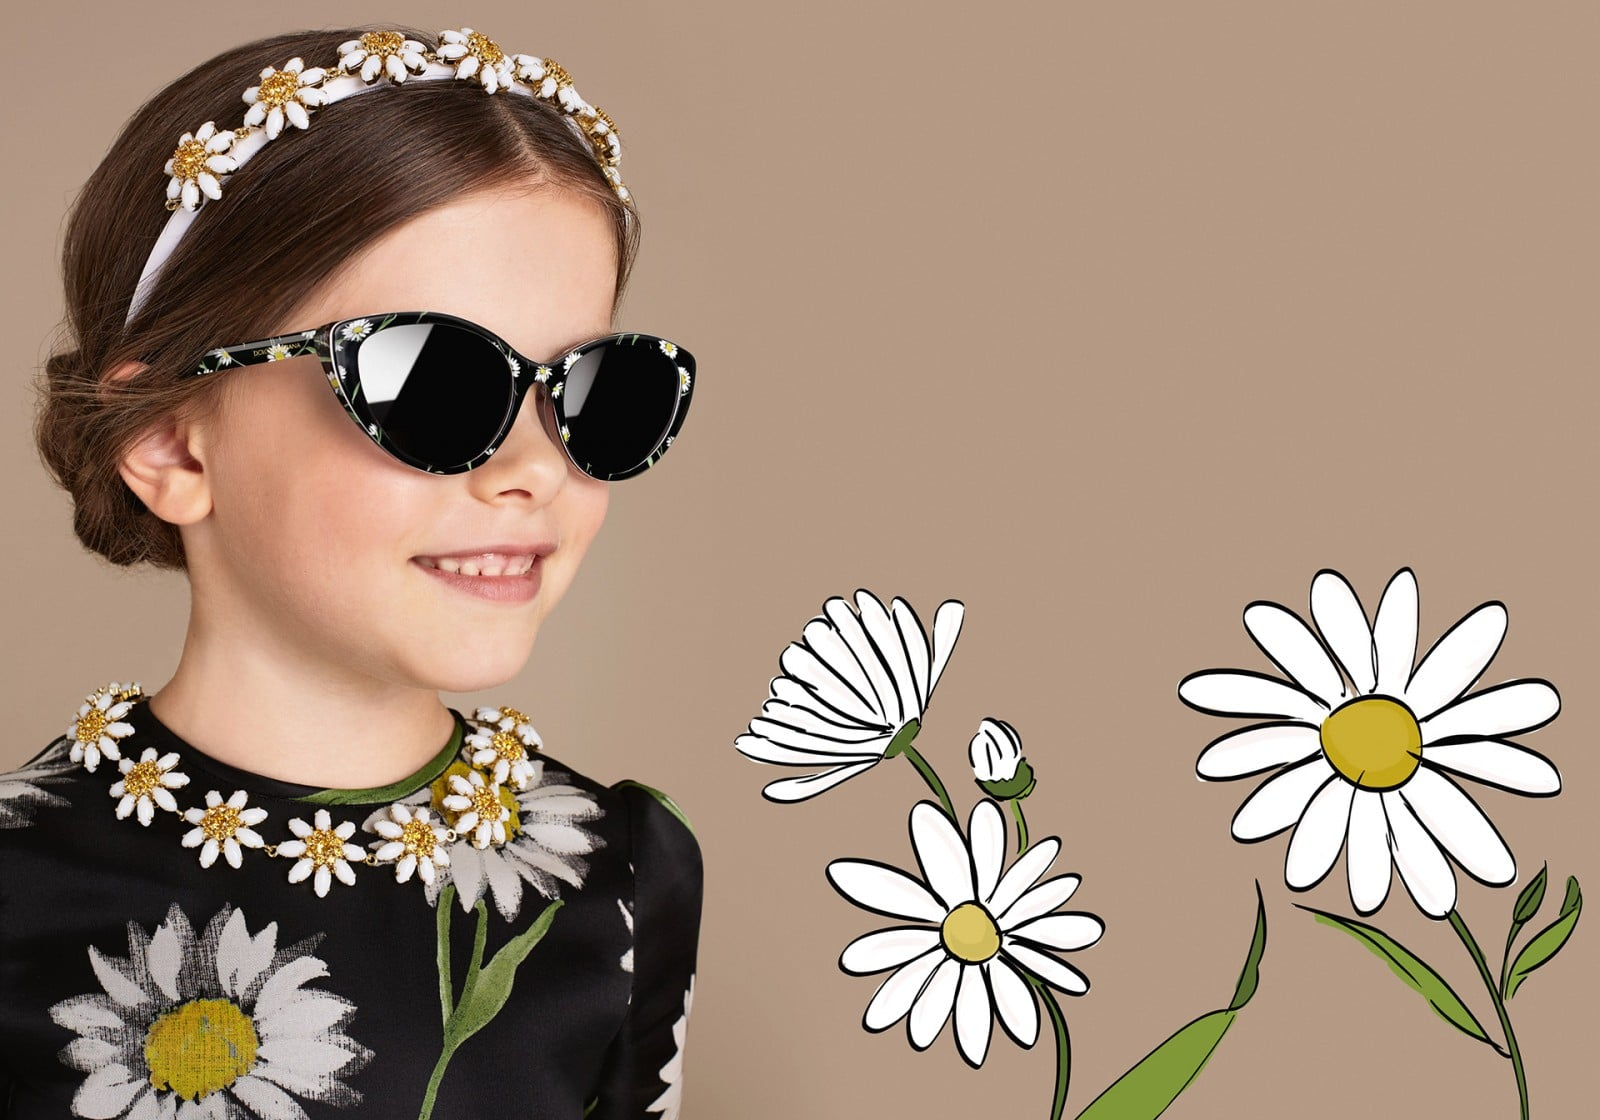 dolce-and-gabbana-summer-2016-child-collection-071-1600x1120.jpg